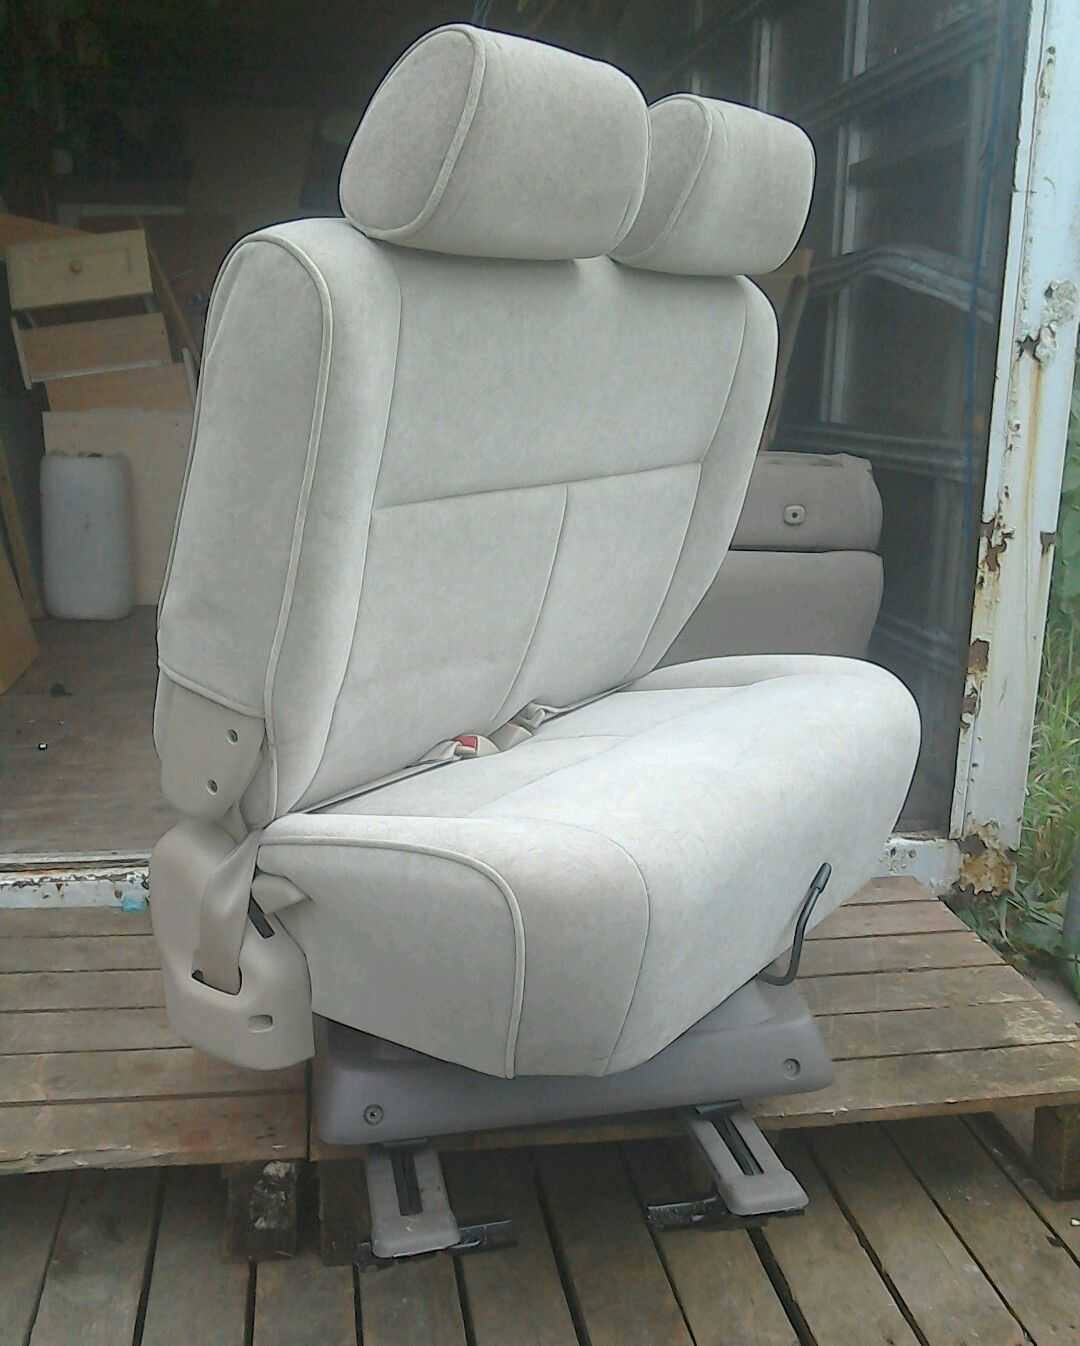 swivel chair mercedes sprinter best drafting chairs double seat captain bench camper van bed belts vw